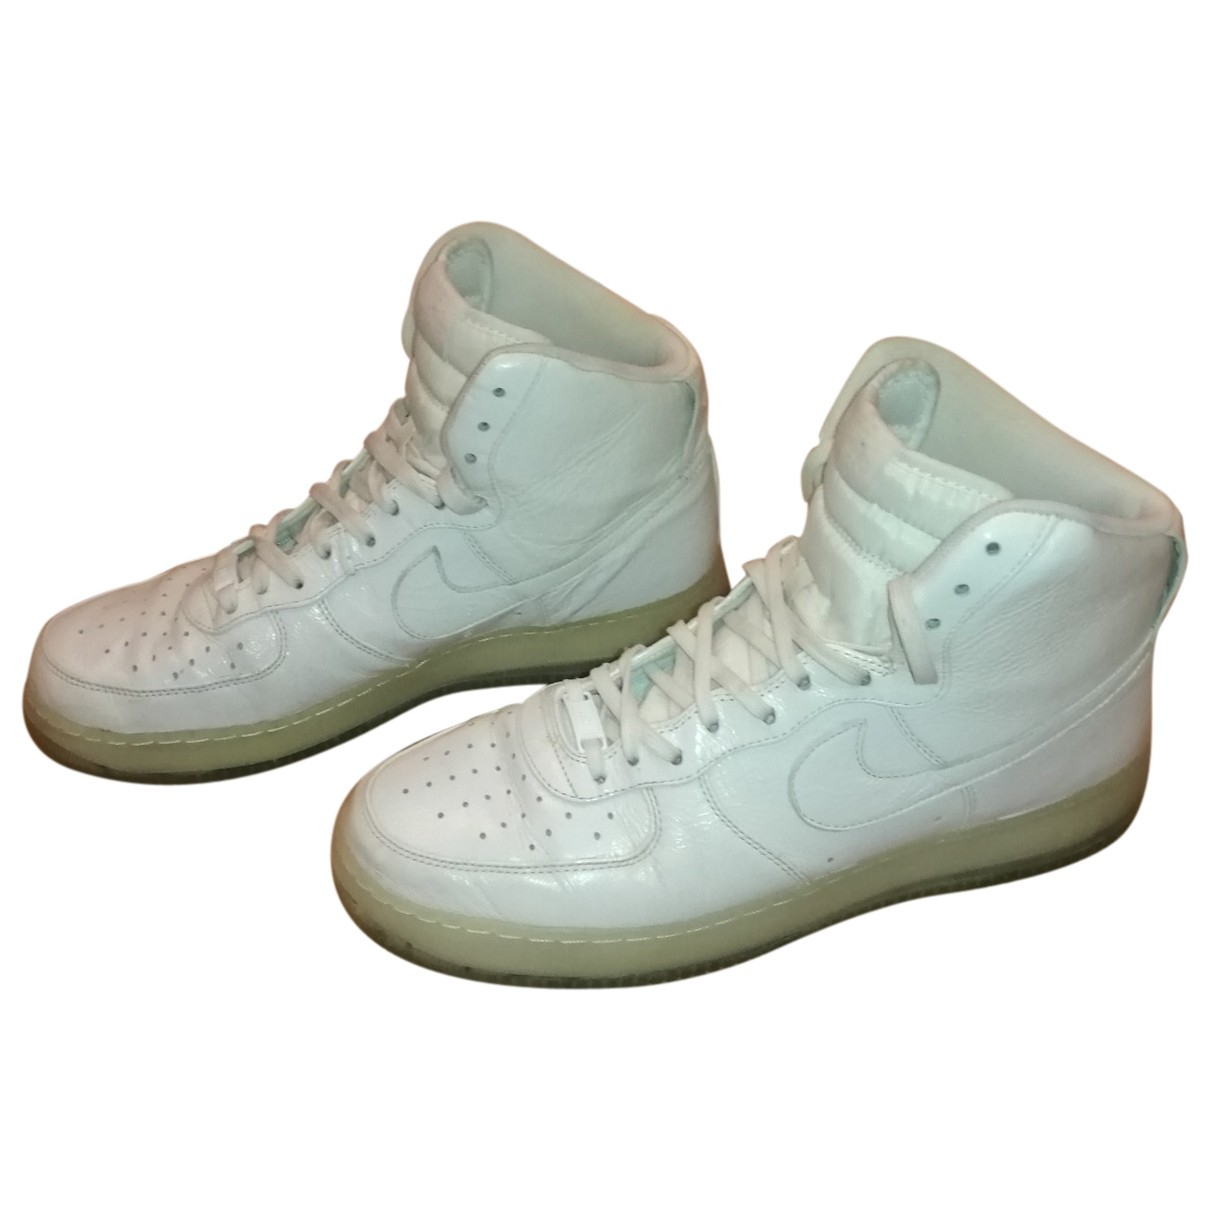 Nike Air Force 1 White Leather Trainers for Men 46 EU